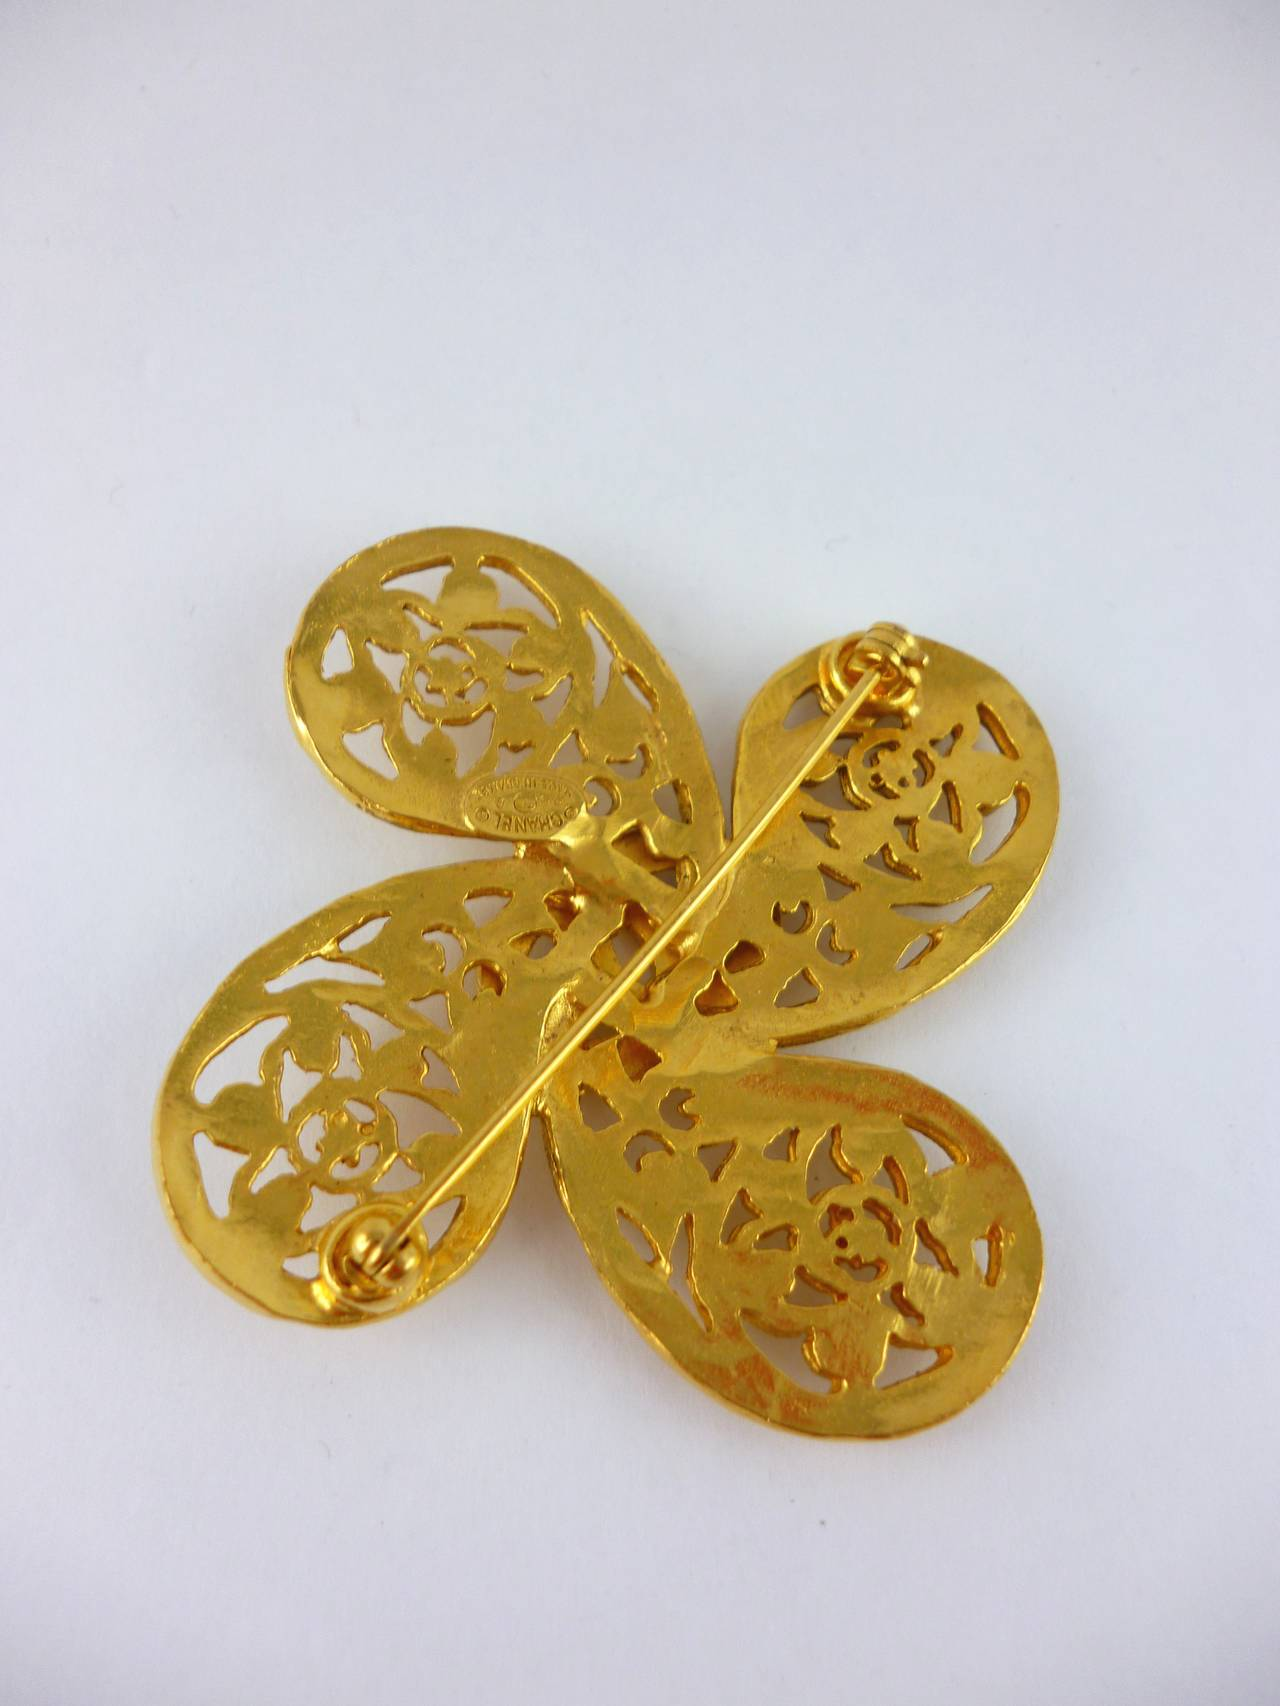 Chanel Vintage Fall/Winter 1993 Gold Tone Openwork Clover Brooch 3